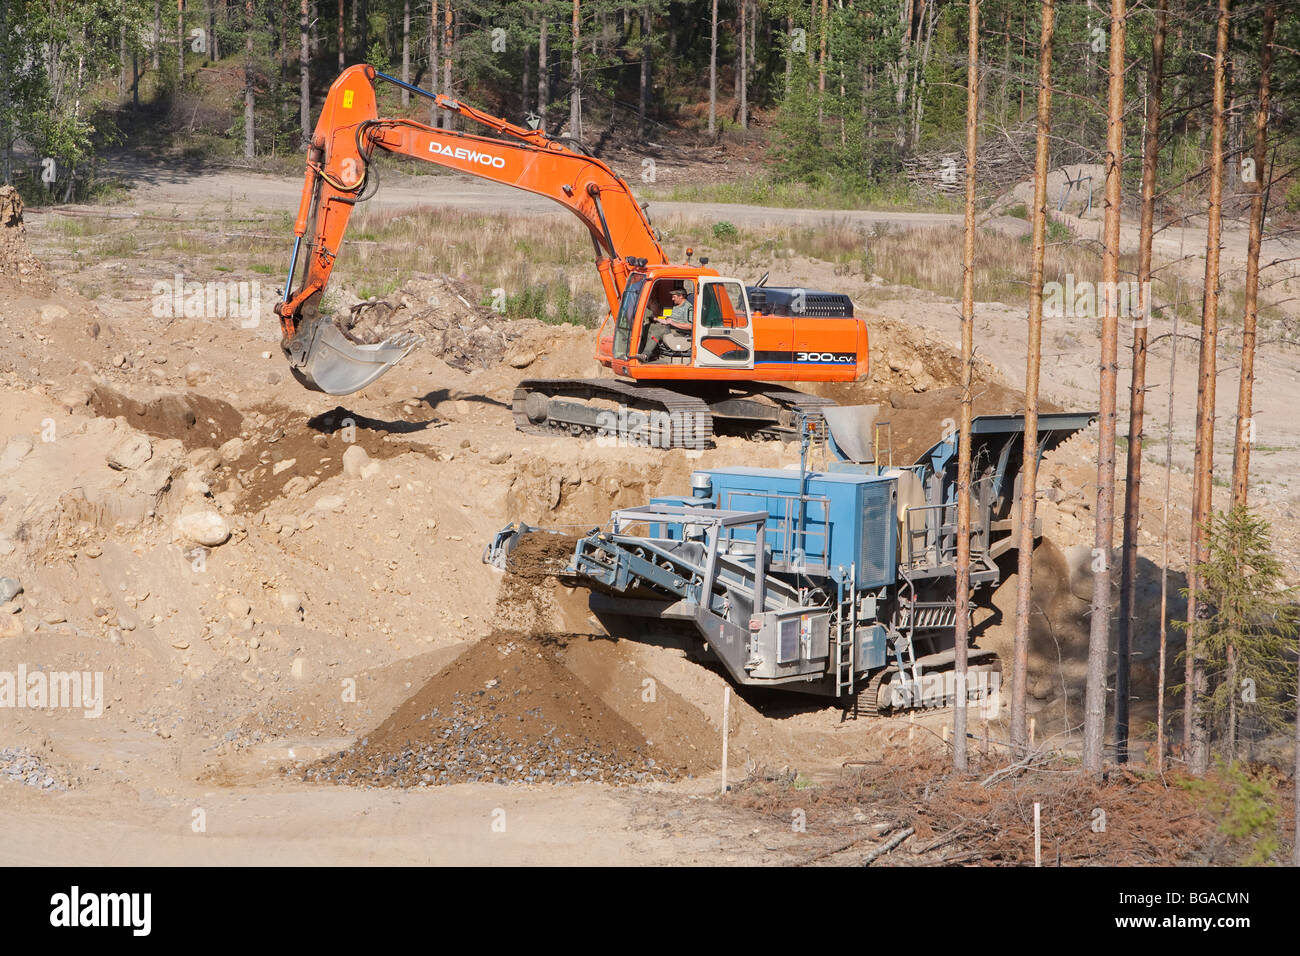 Daewoo digger loading sand and stones to the rock crusher / separator machine at a sandpit , Finland - Stock Image